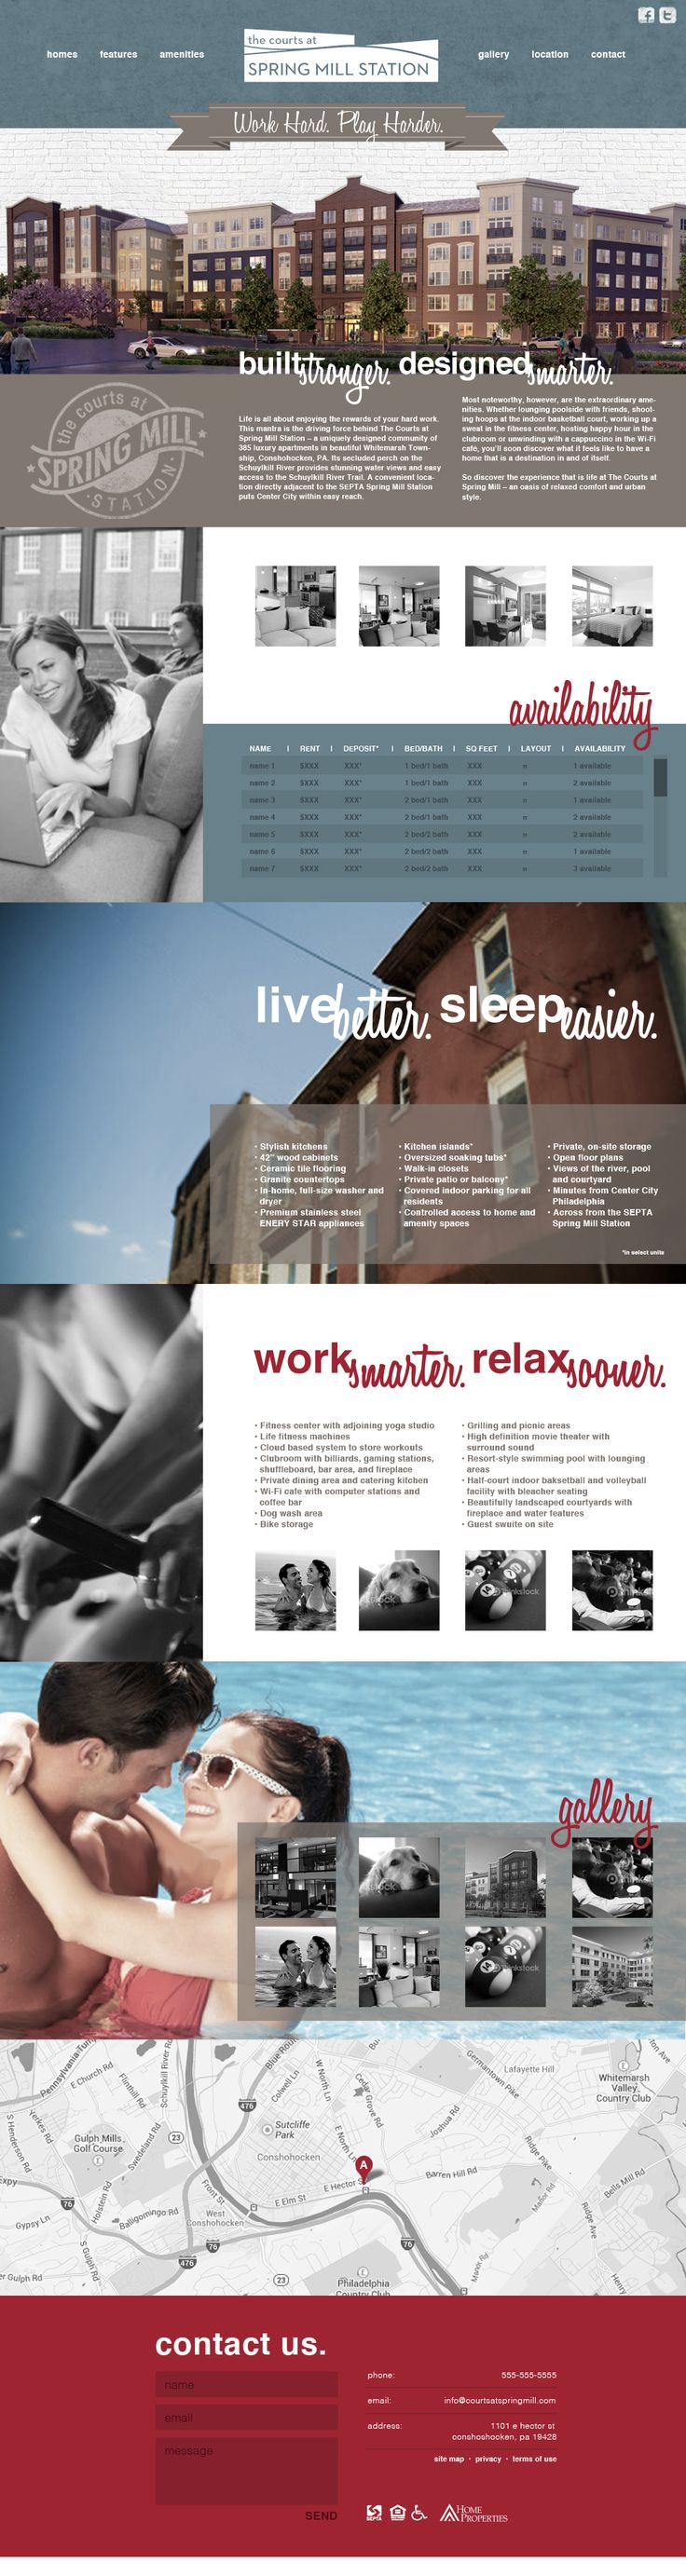 Concept For Apartment Complex Website Done As A Single Scroll Page With  Moving Header, Utlizing